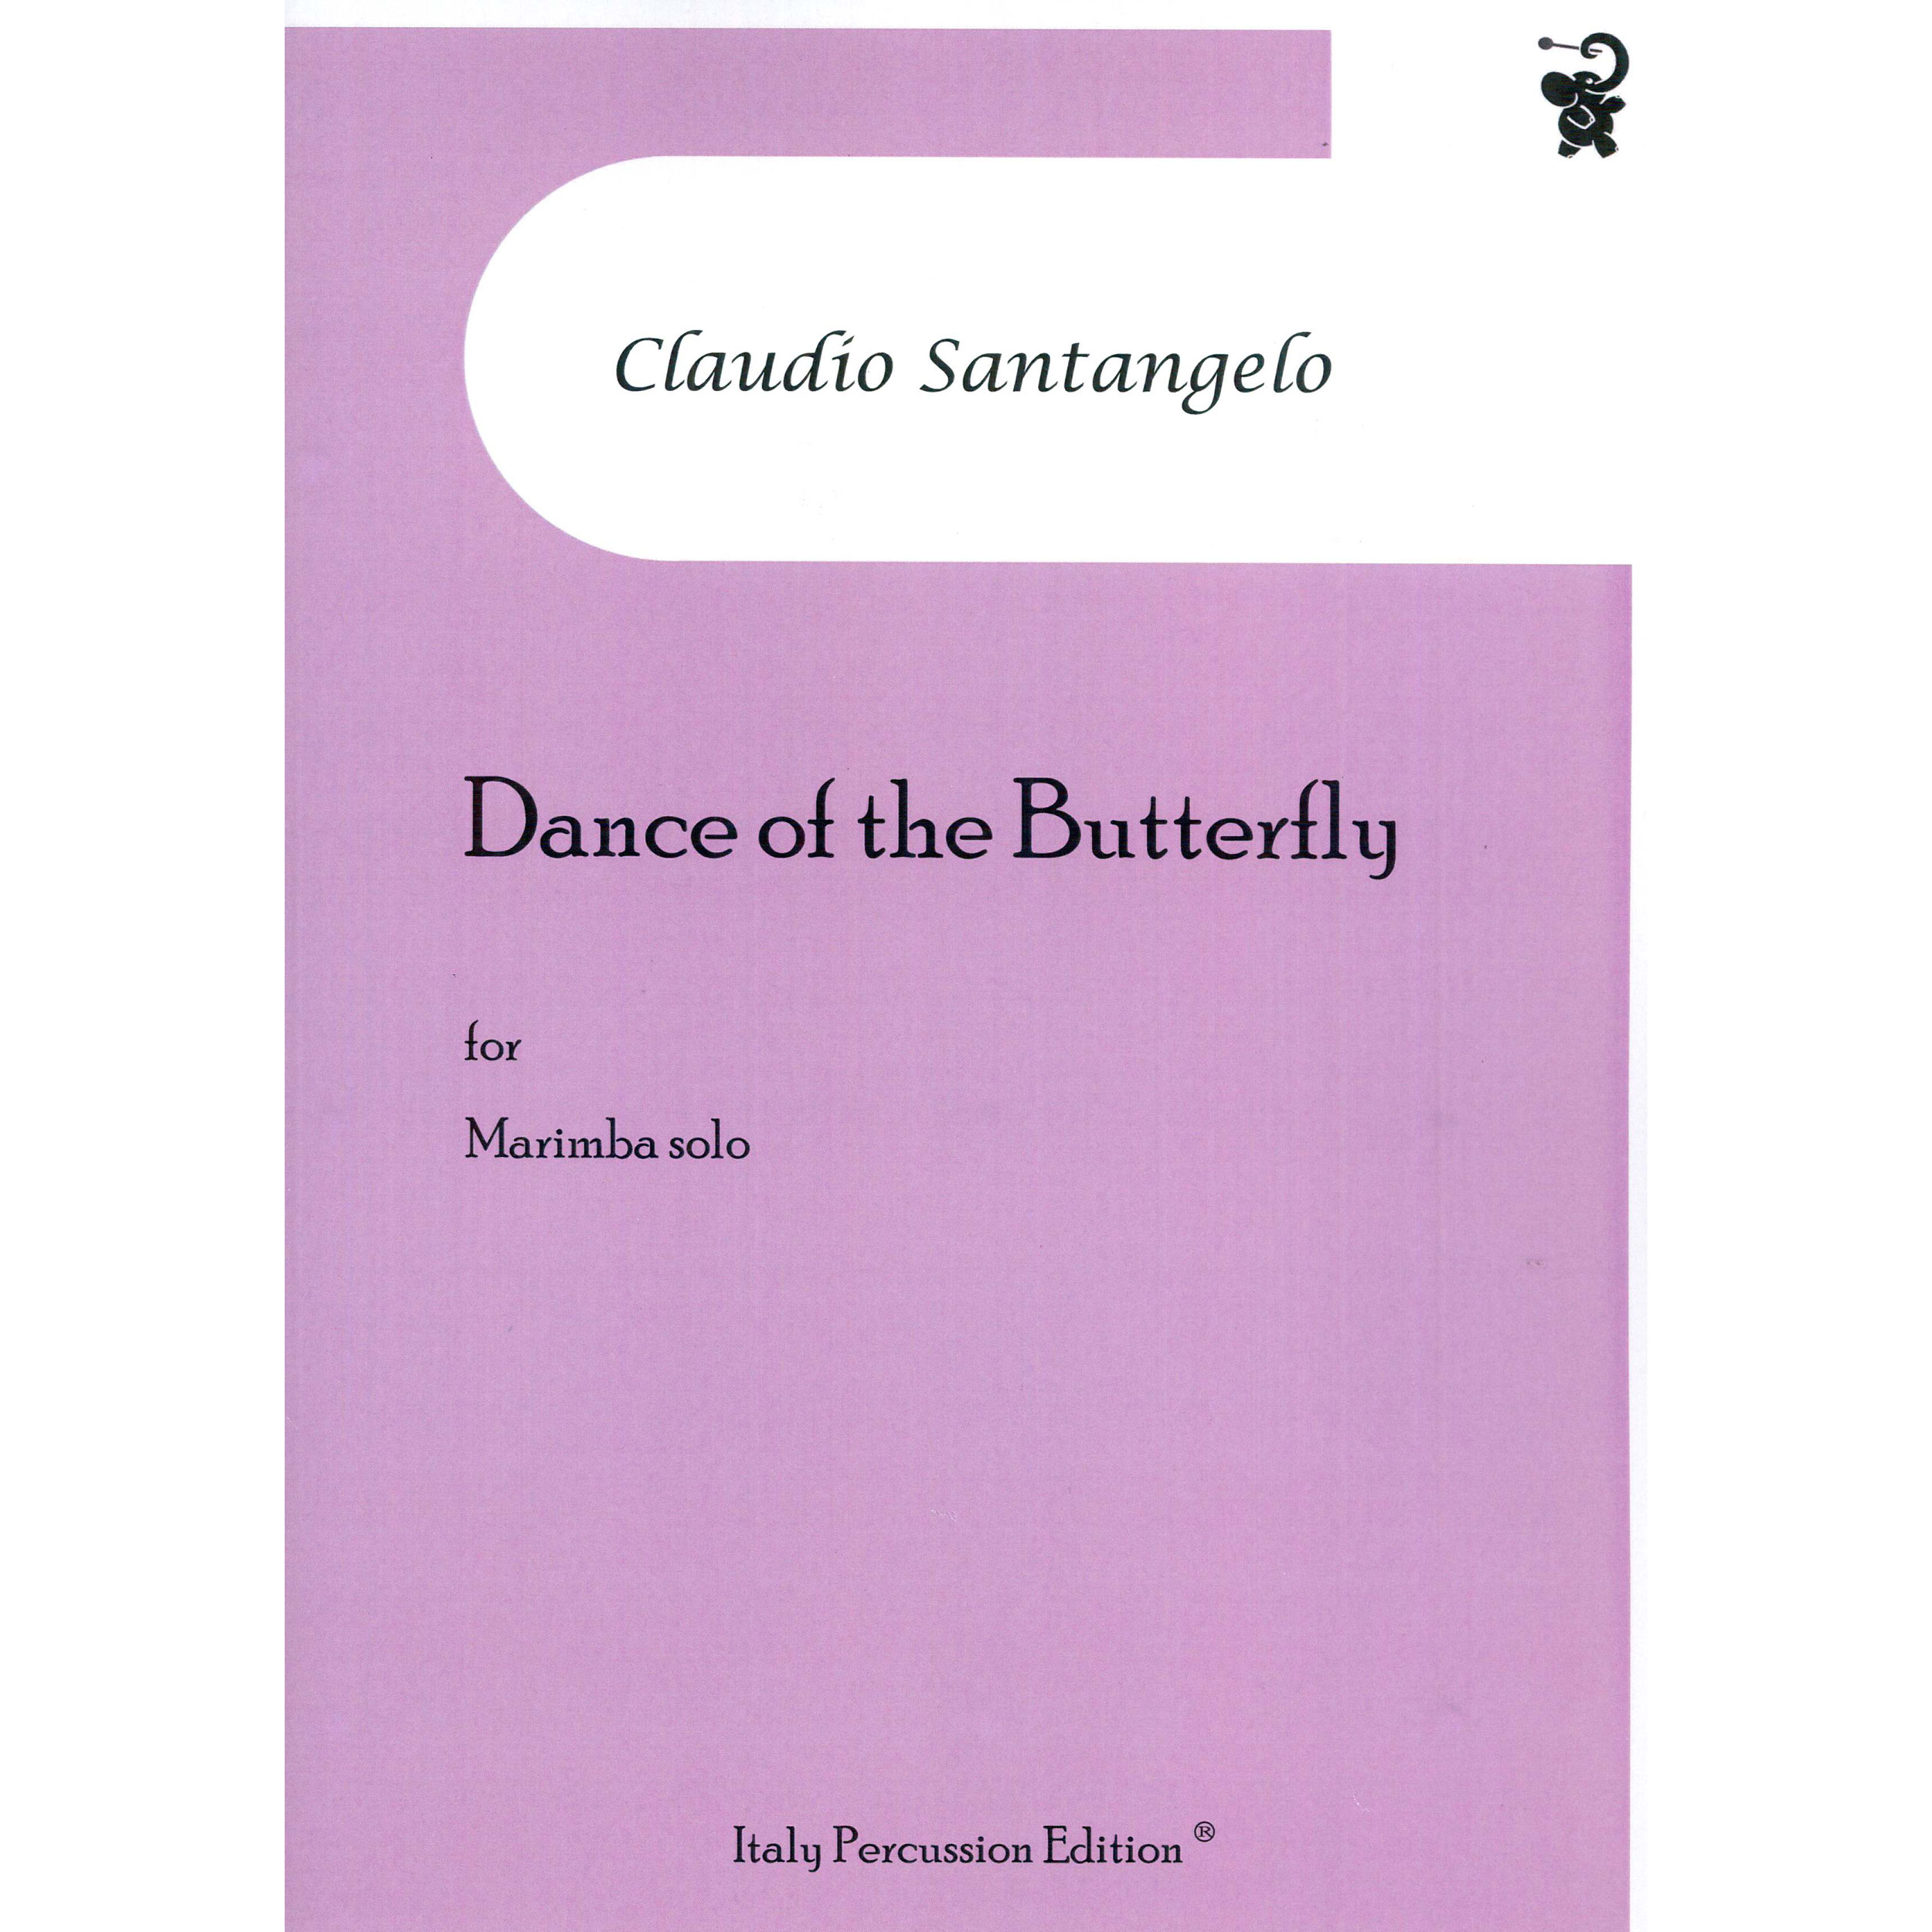 Dance of the Butterfly by Claudio Santangelo